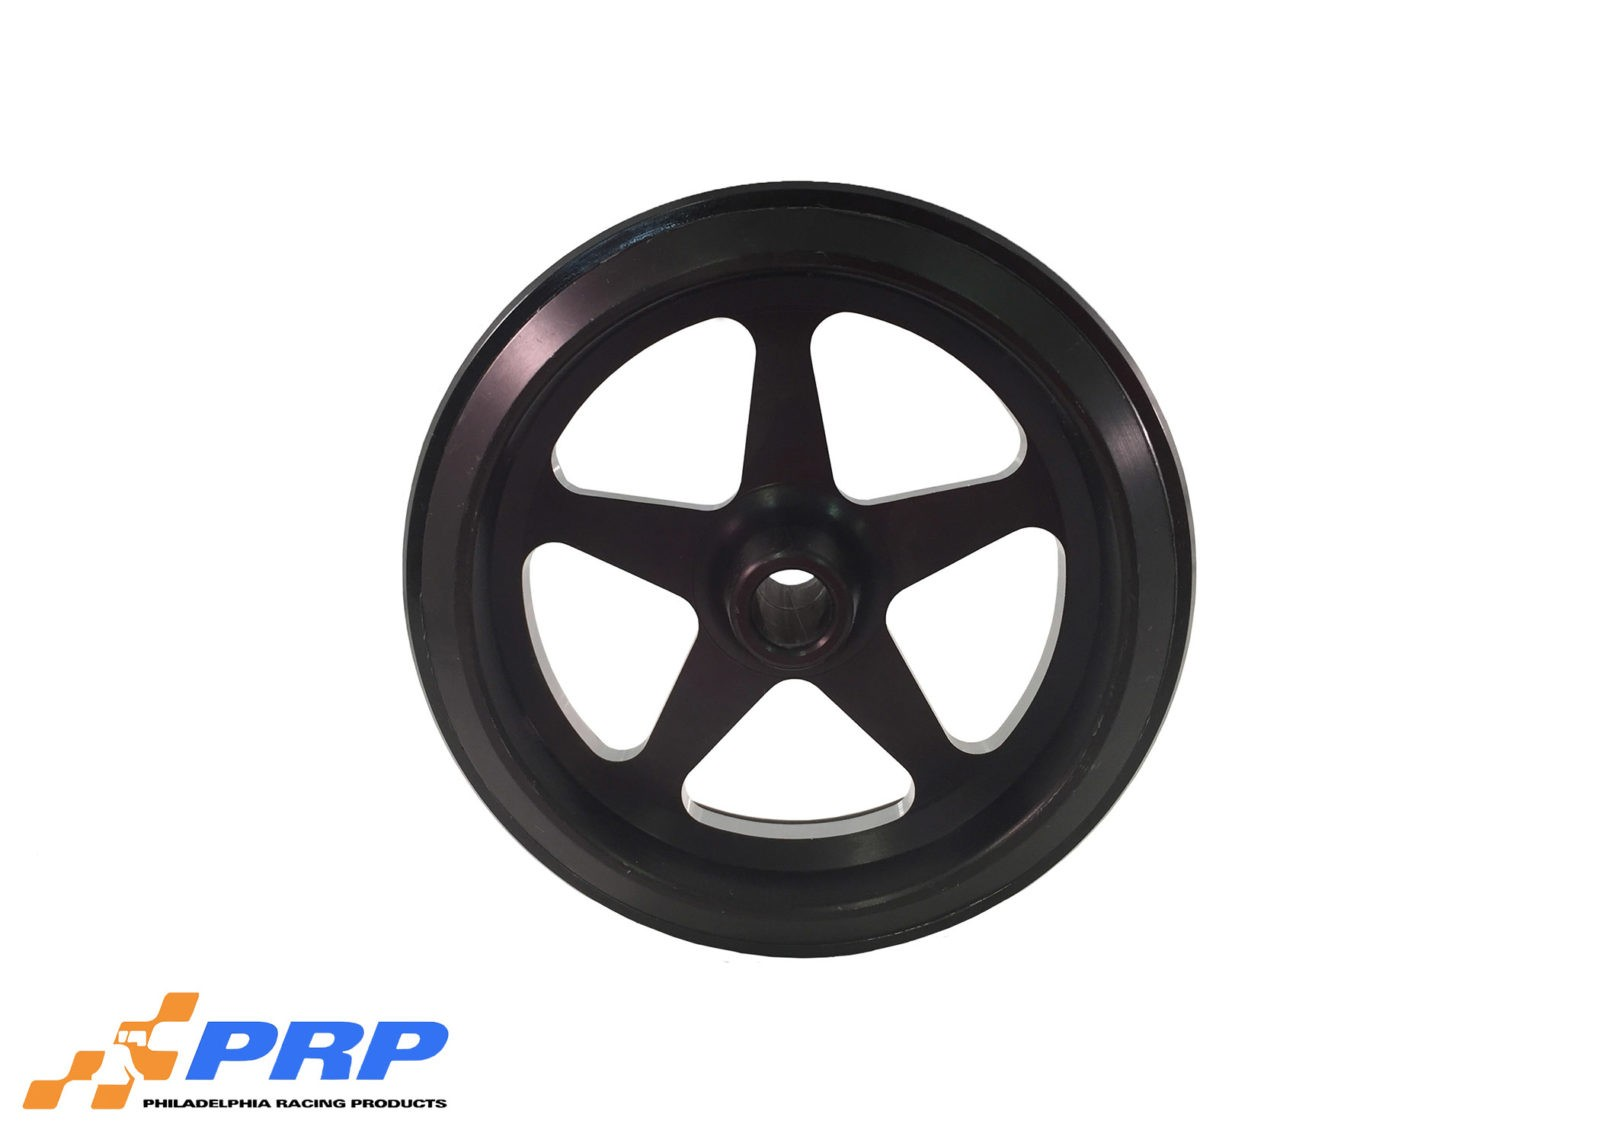 Black Anodized Star Style Wheelie bar Wheelsmade by PRP Racing Products